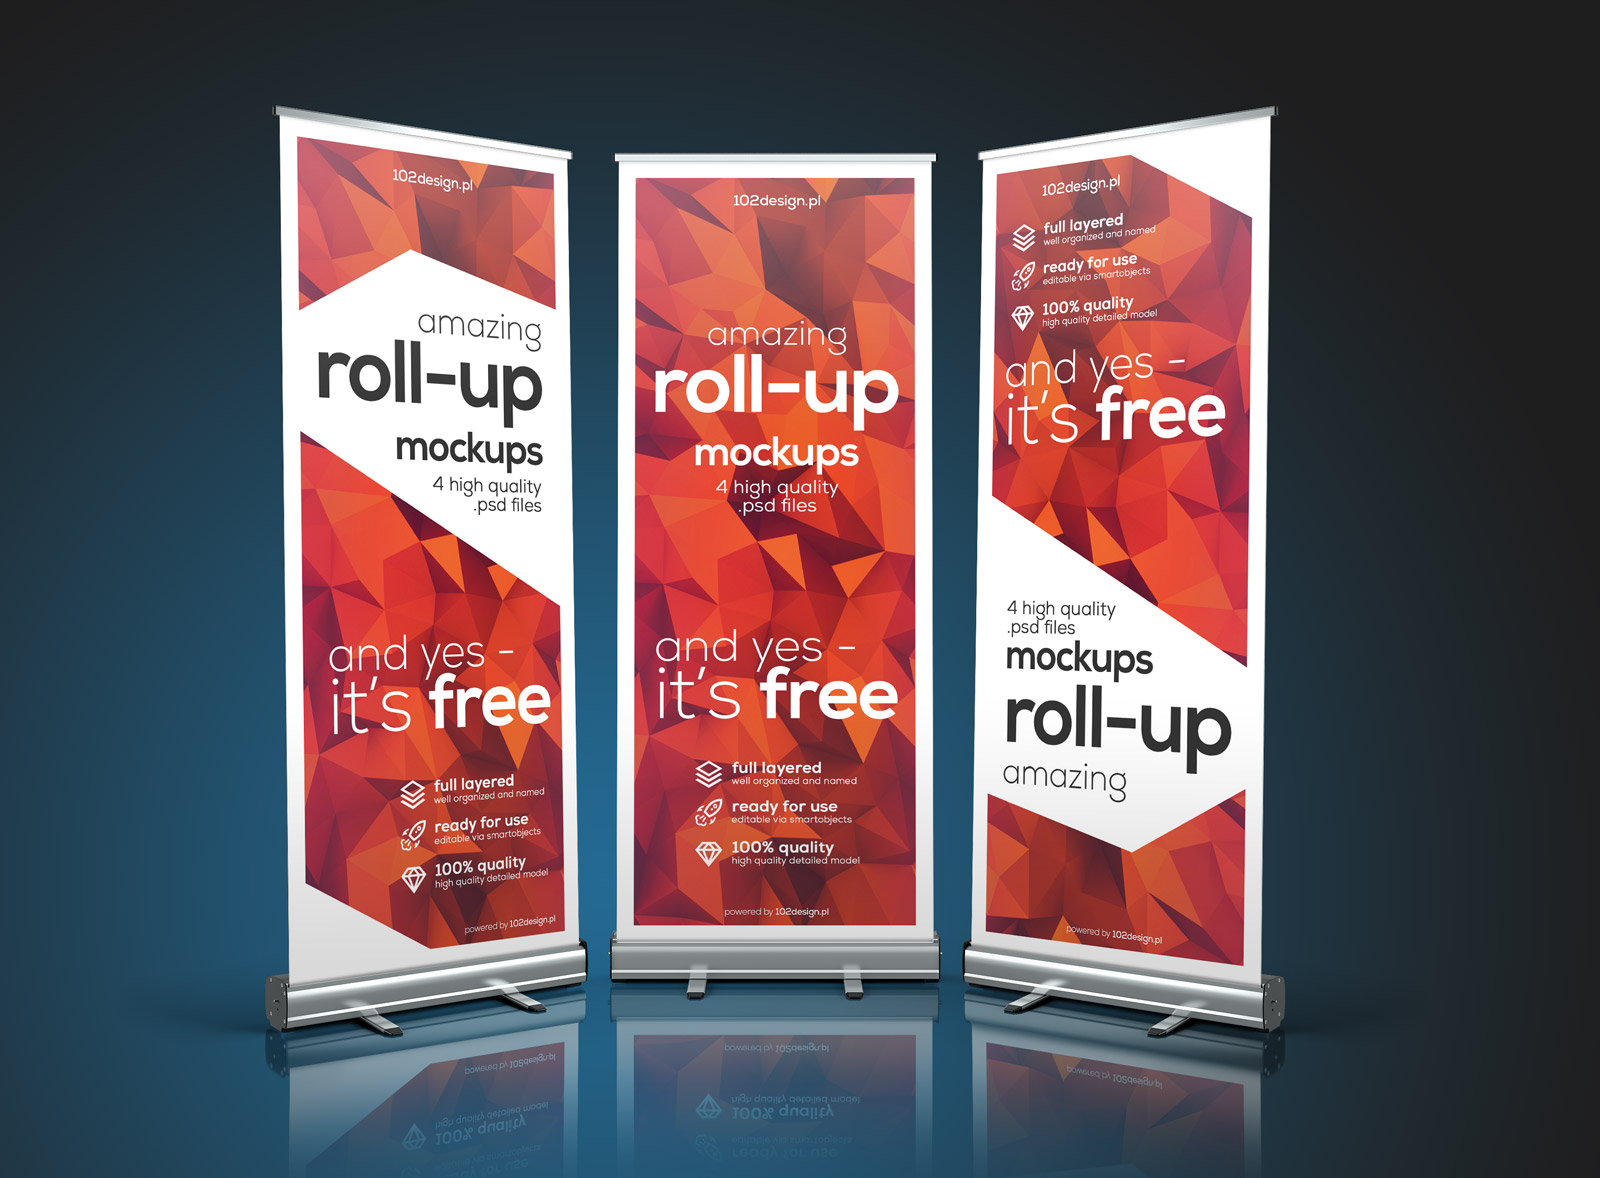 Free-Premuim-Roll-up-Banner-Stand-Mockup-PSD